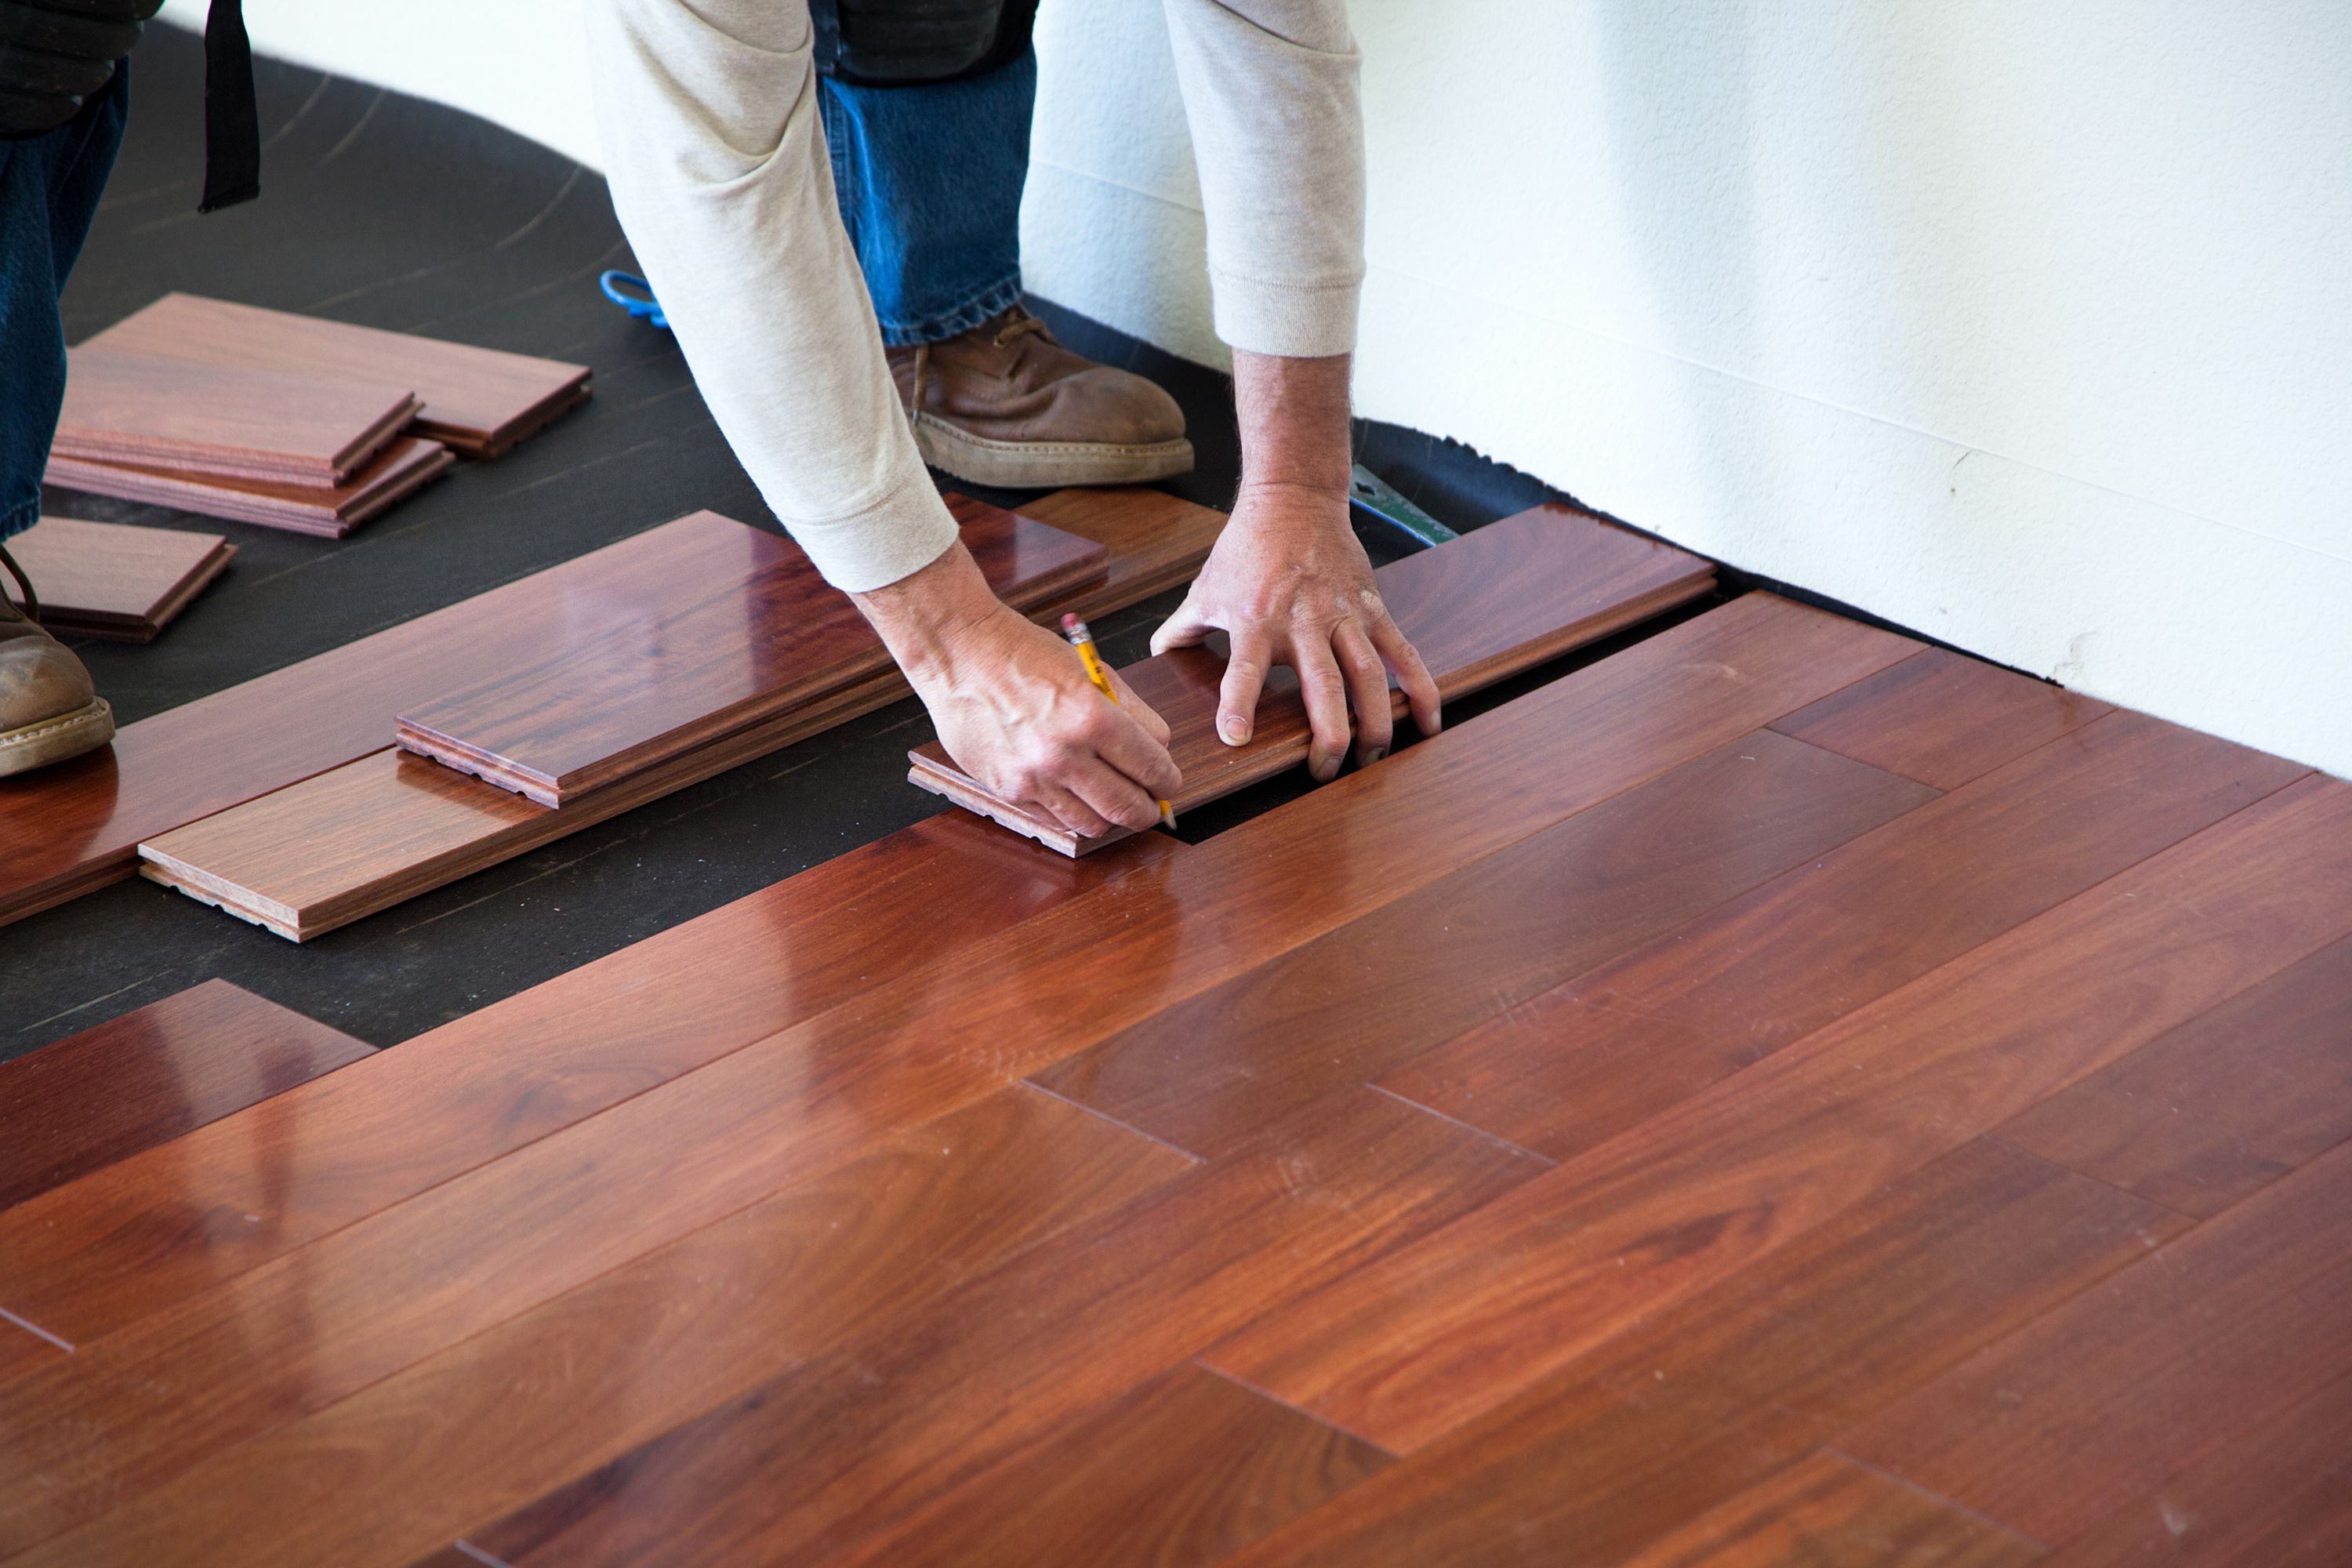 hardwood floor installation layout of the subfloor is the foundation of a good floor pertaining to installing hardwood floor 170040982 582b748c5f9b58d5b17d0c58